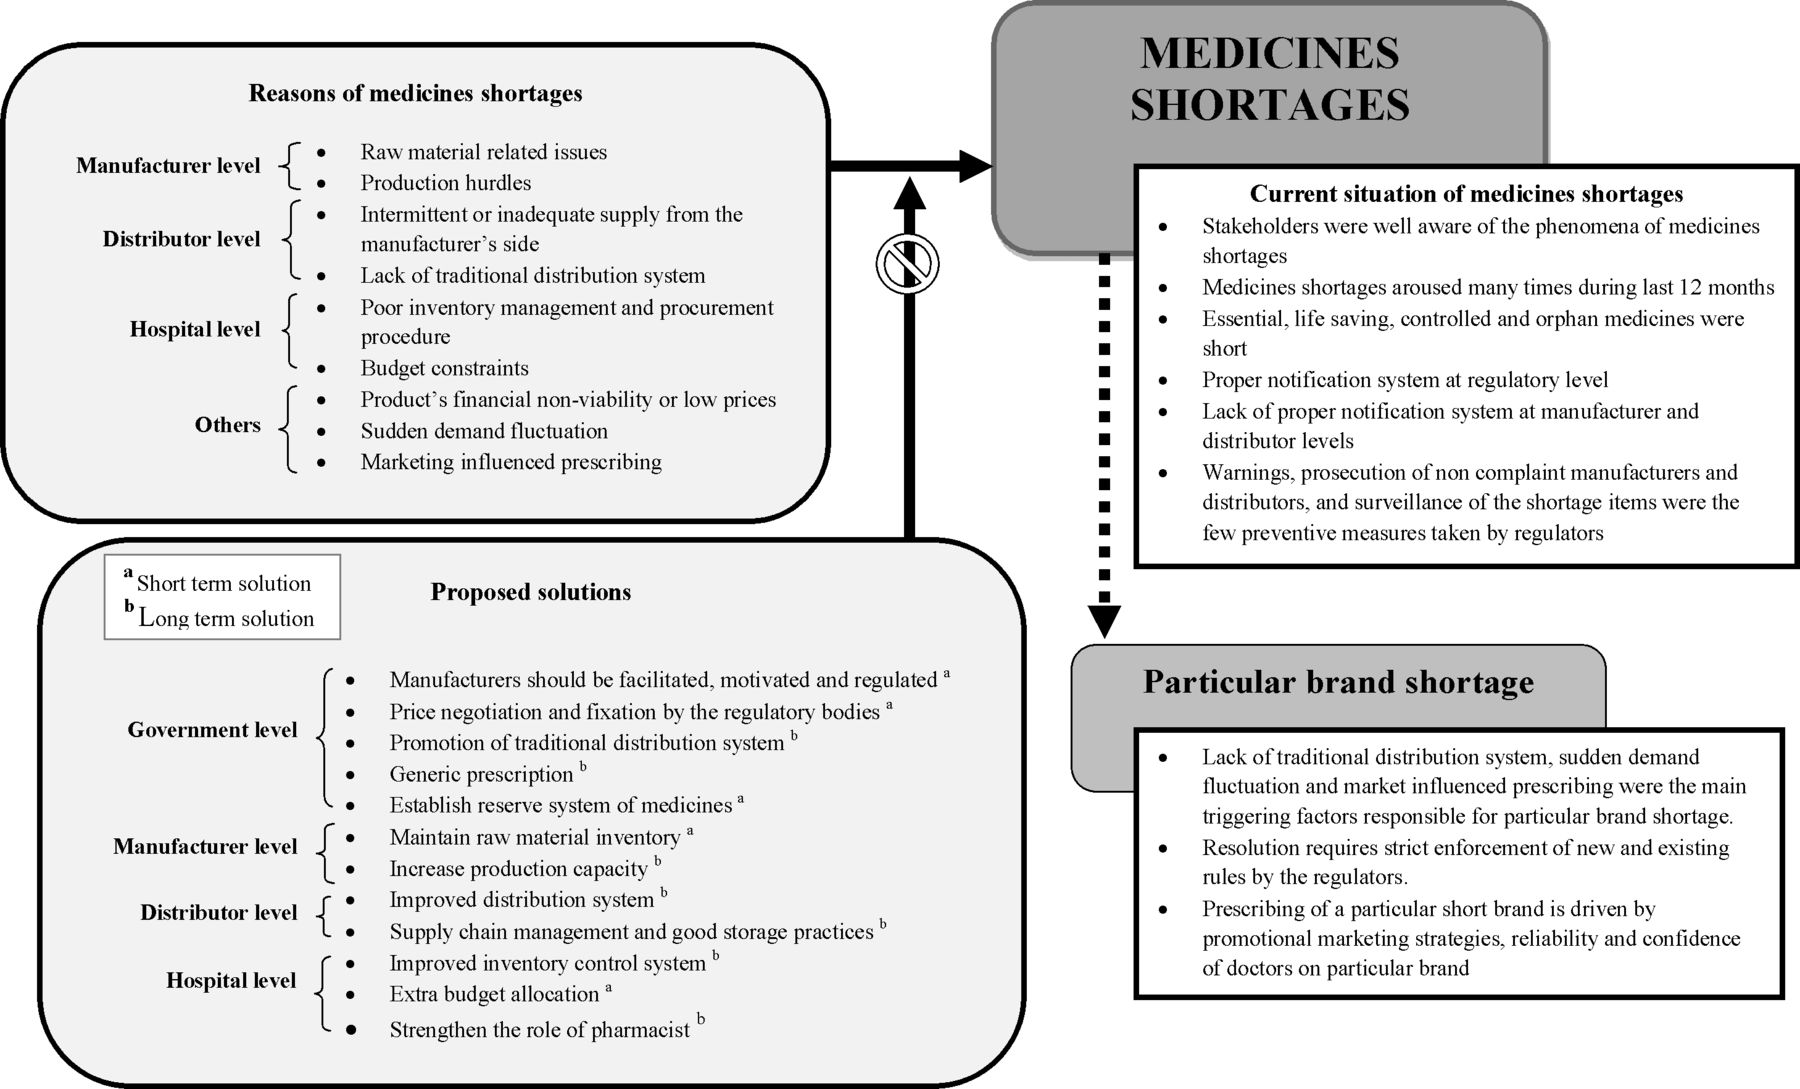 Medicines shortages in Pakistan: a qualitative study to